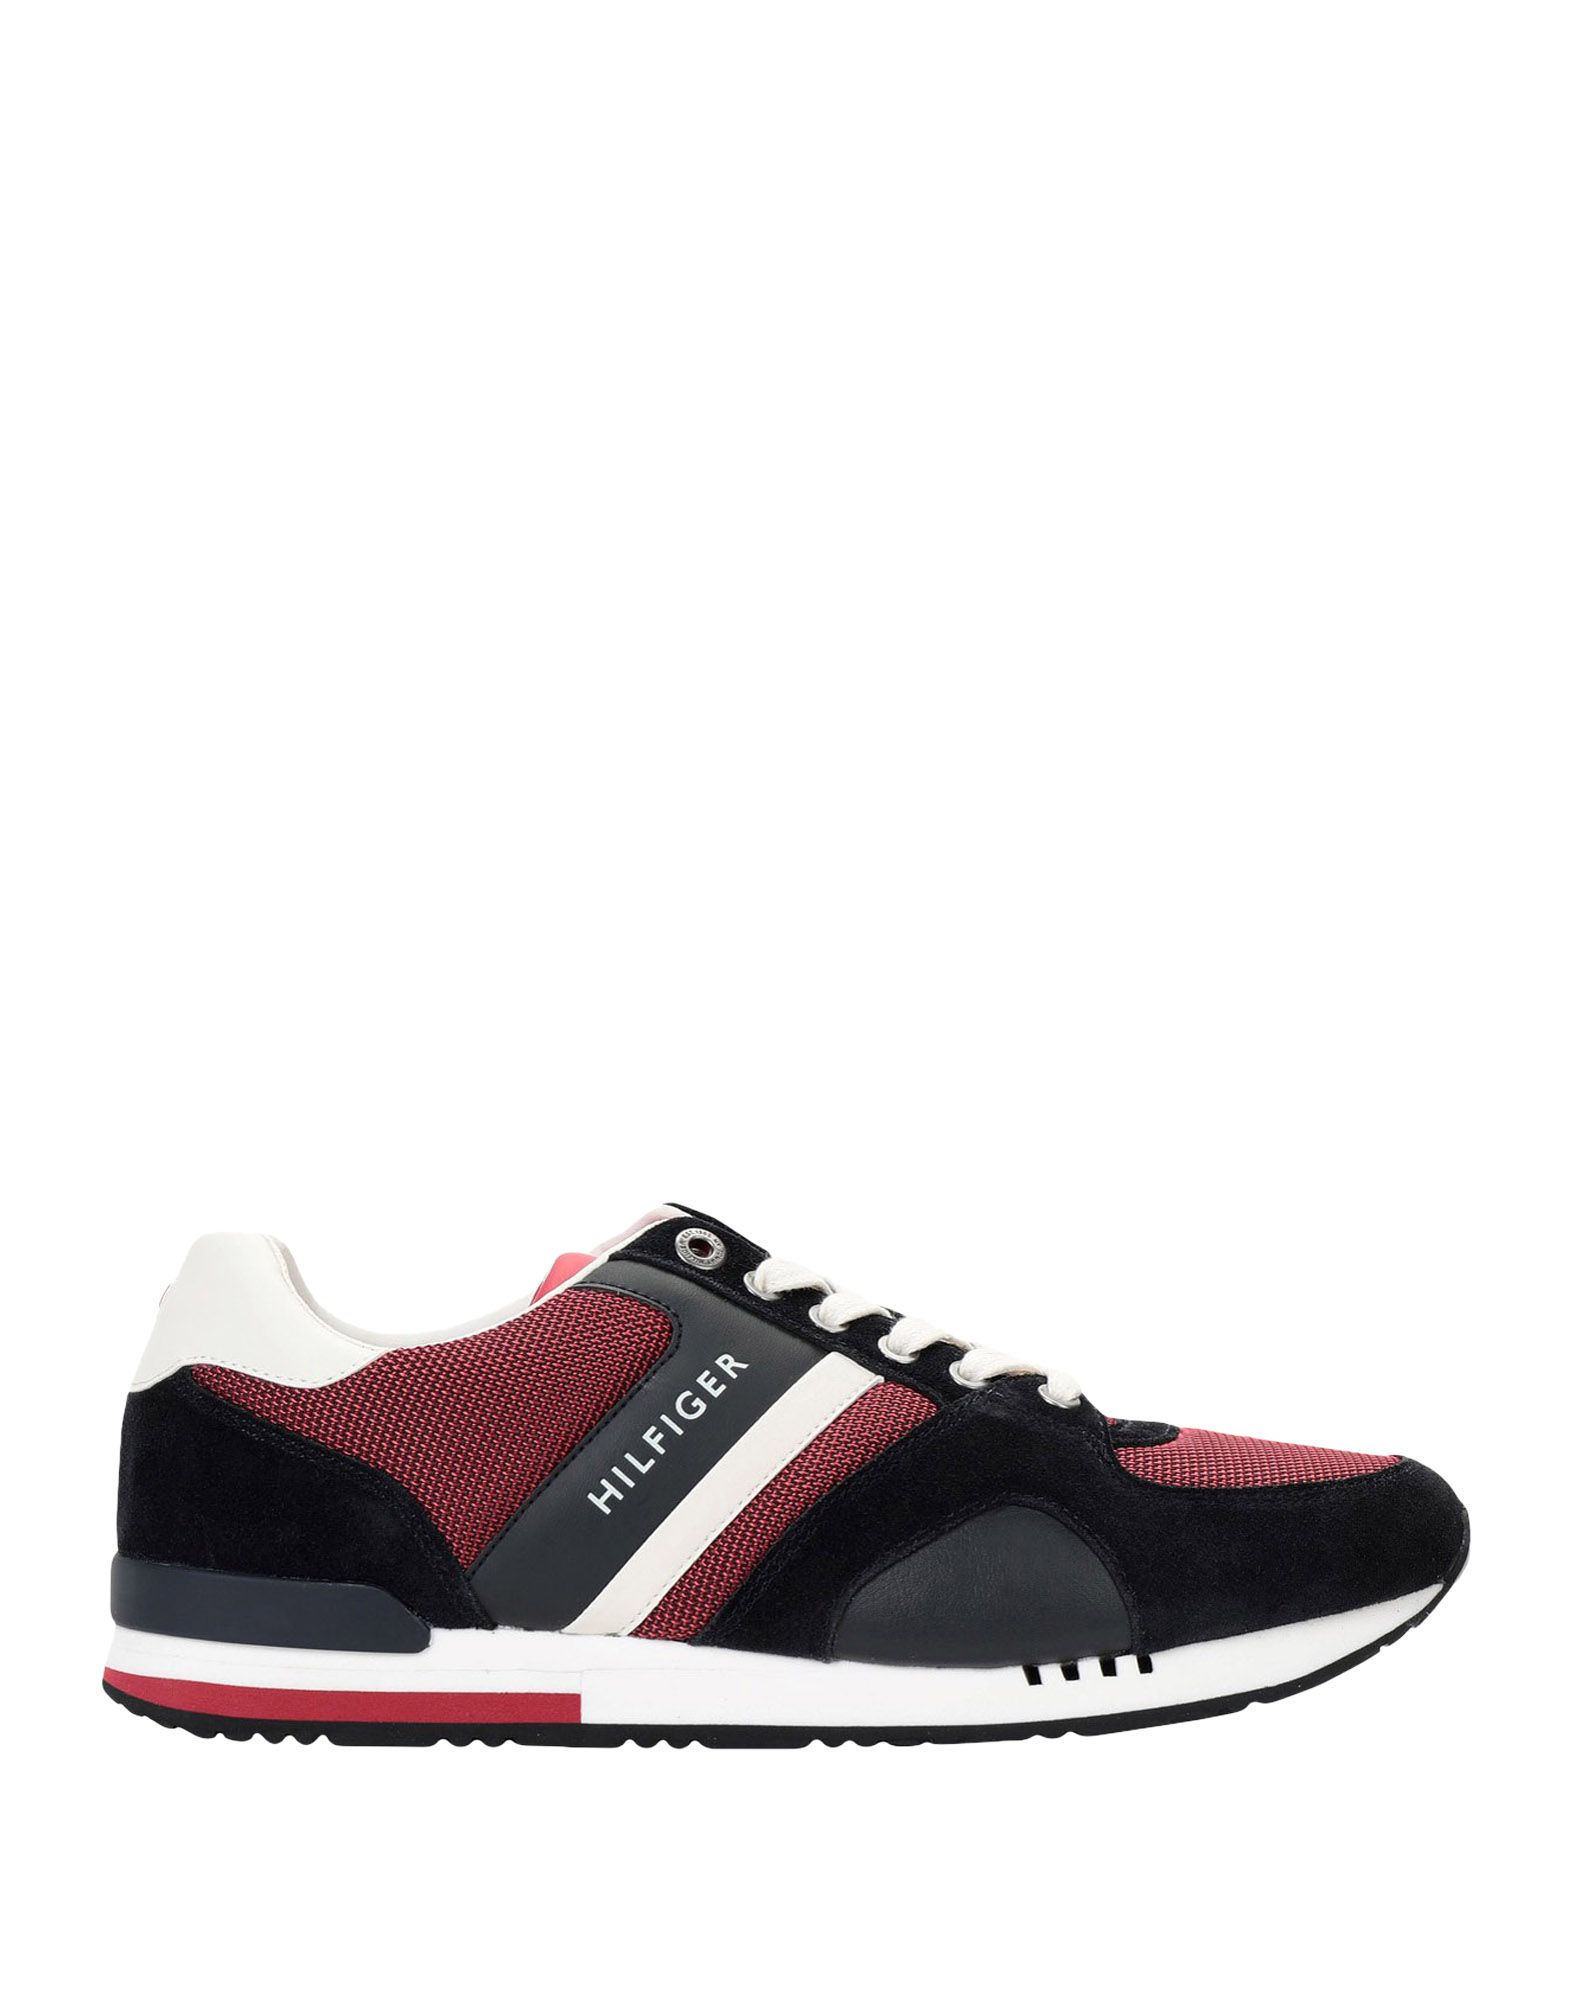 Sneakers Tommy Hilfiger New Iconic Sporty Runner - Uomo - 11539203MS